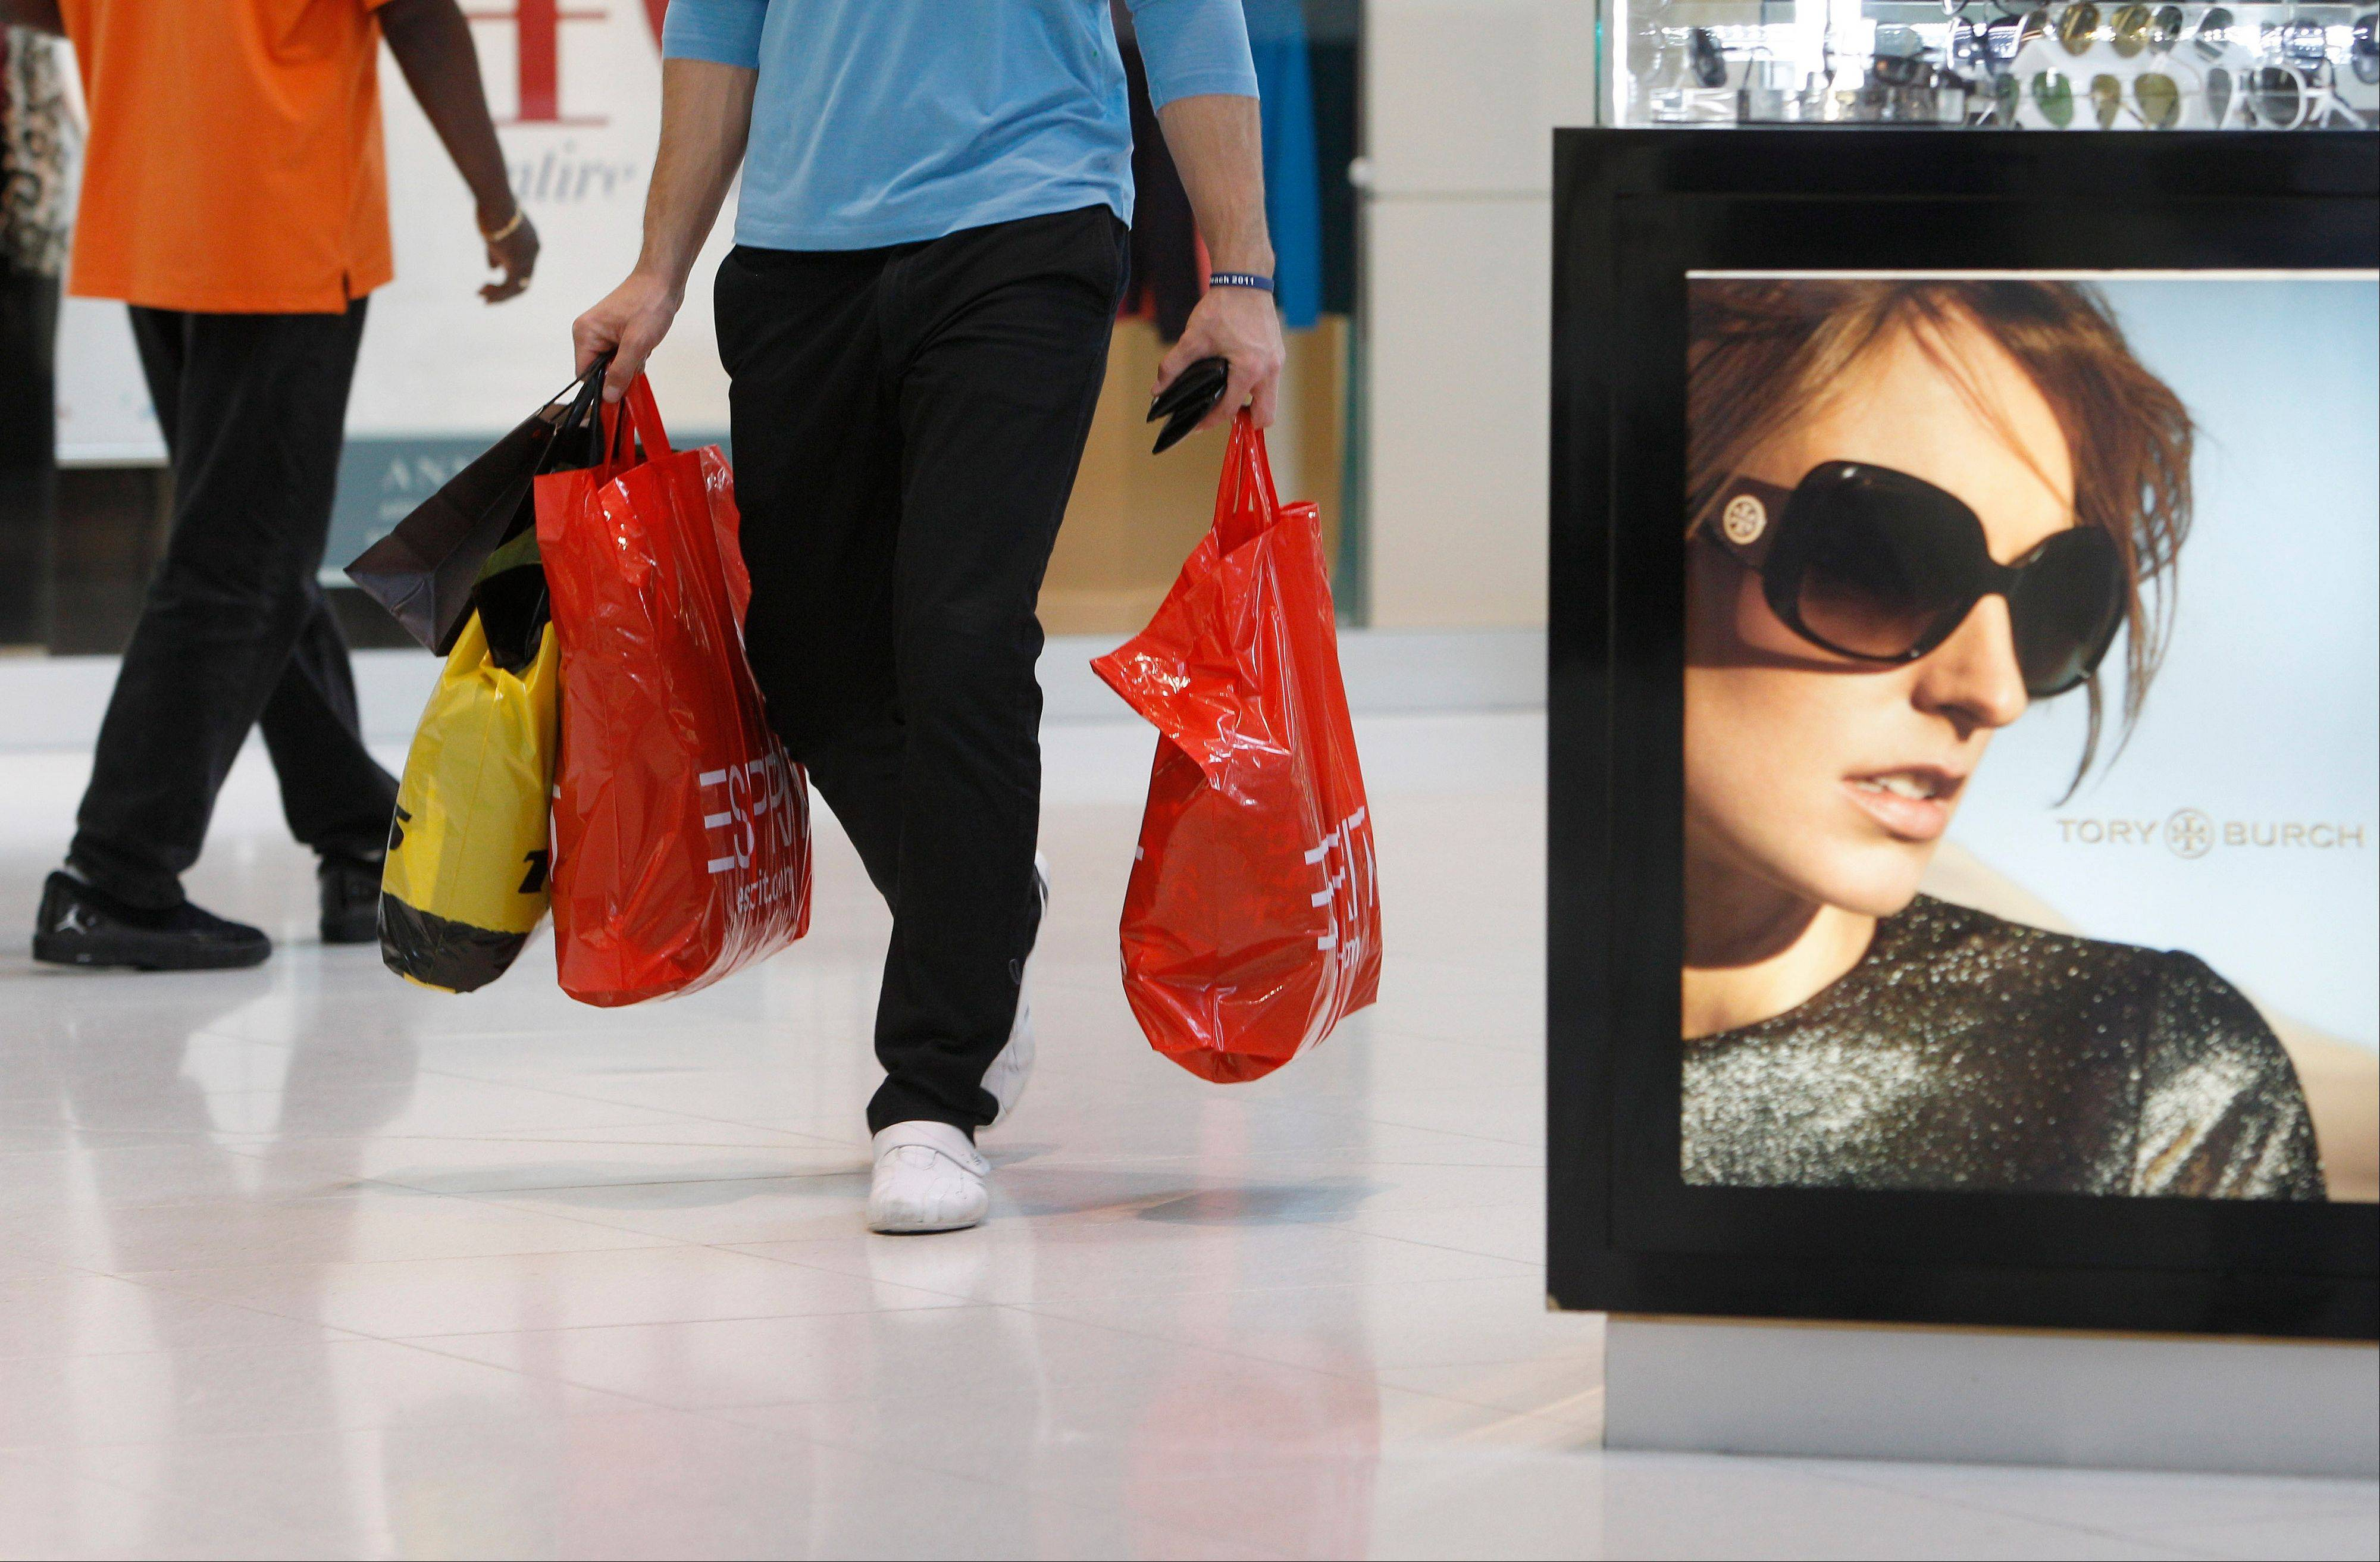 Consumer spending in the U.S. climbed in December as incomes grew by the most in eight years, a sign the biggest part of the economy was contributing to the expansion as the year drew to a close.